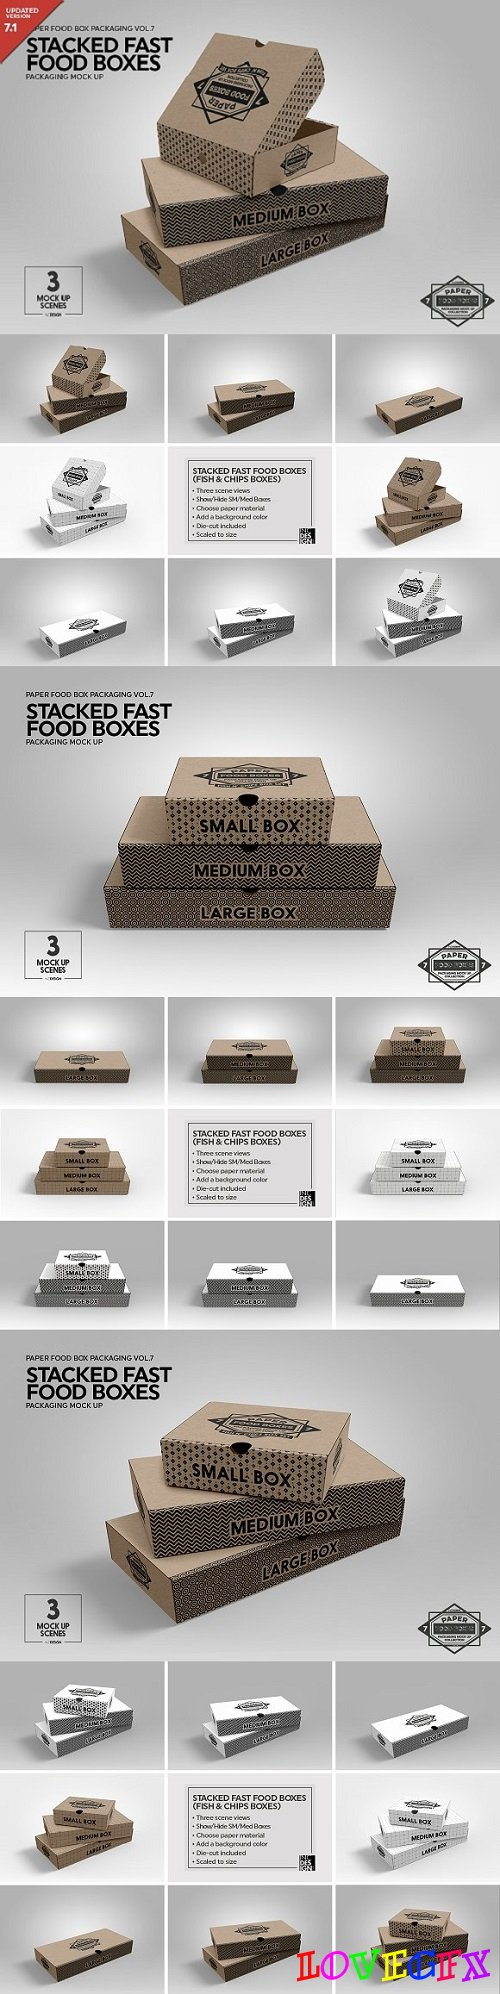 Stacked Fast Food Boxes MockUp 1931891